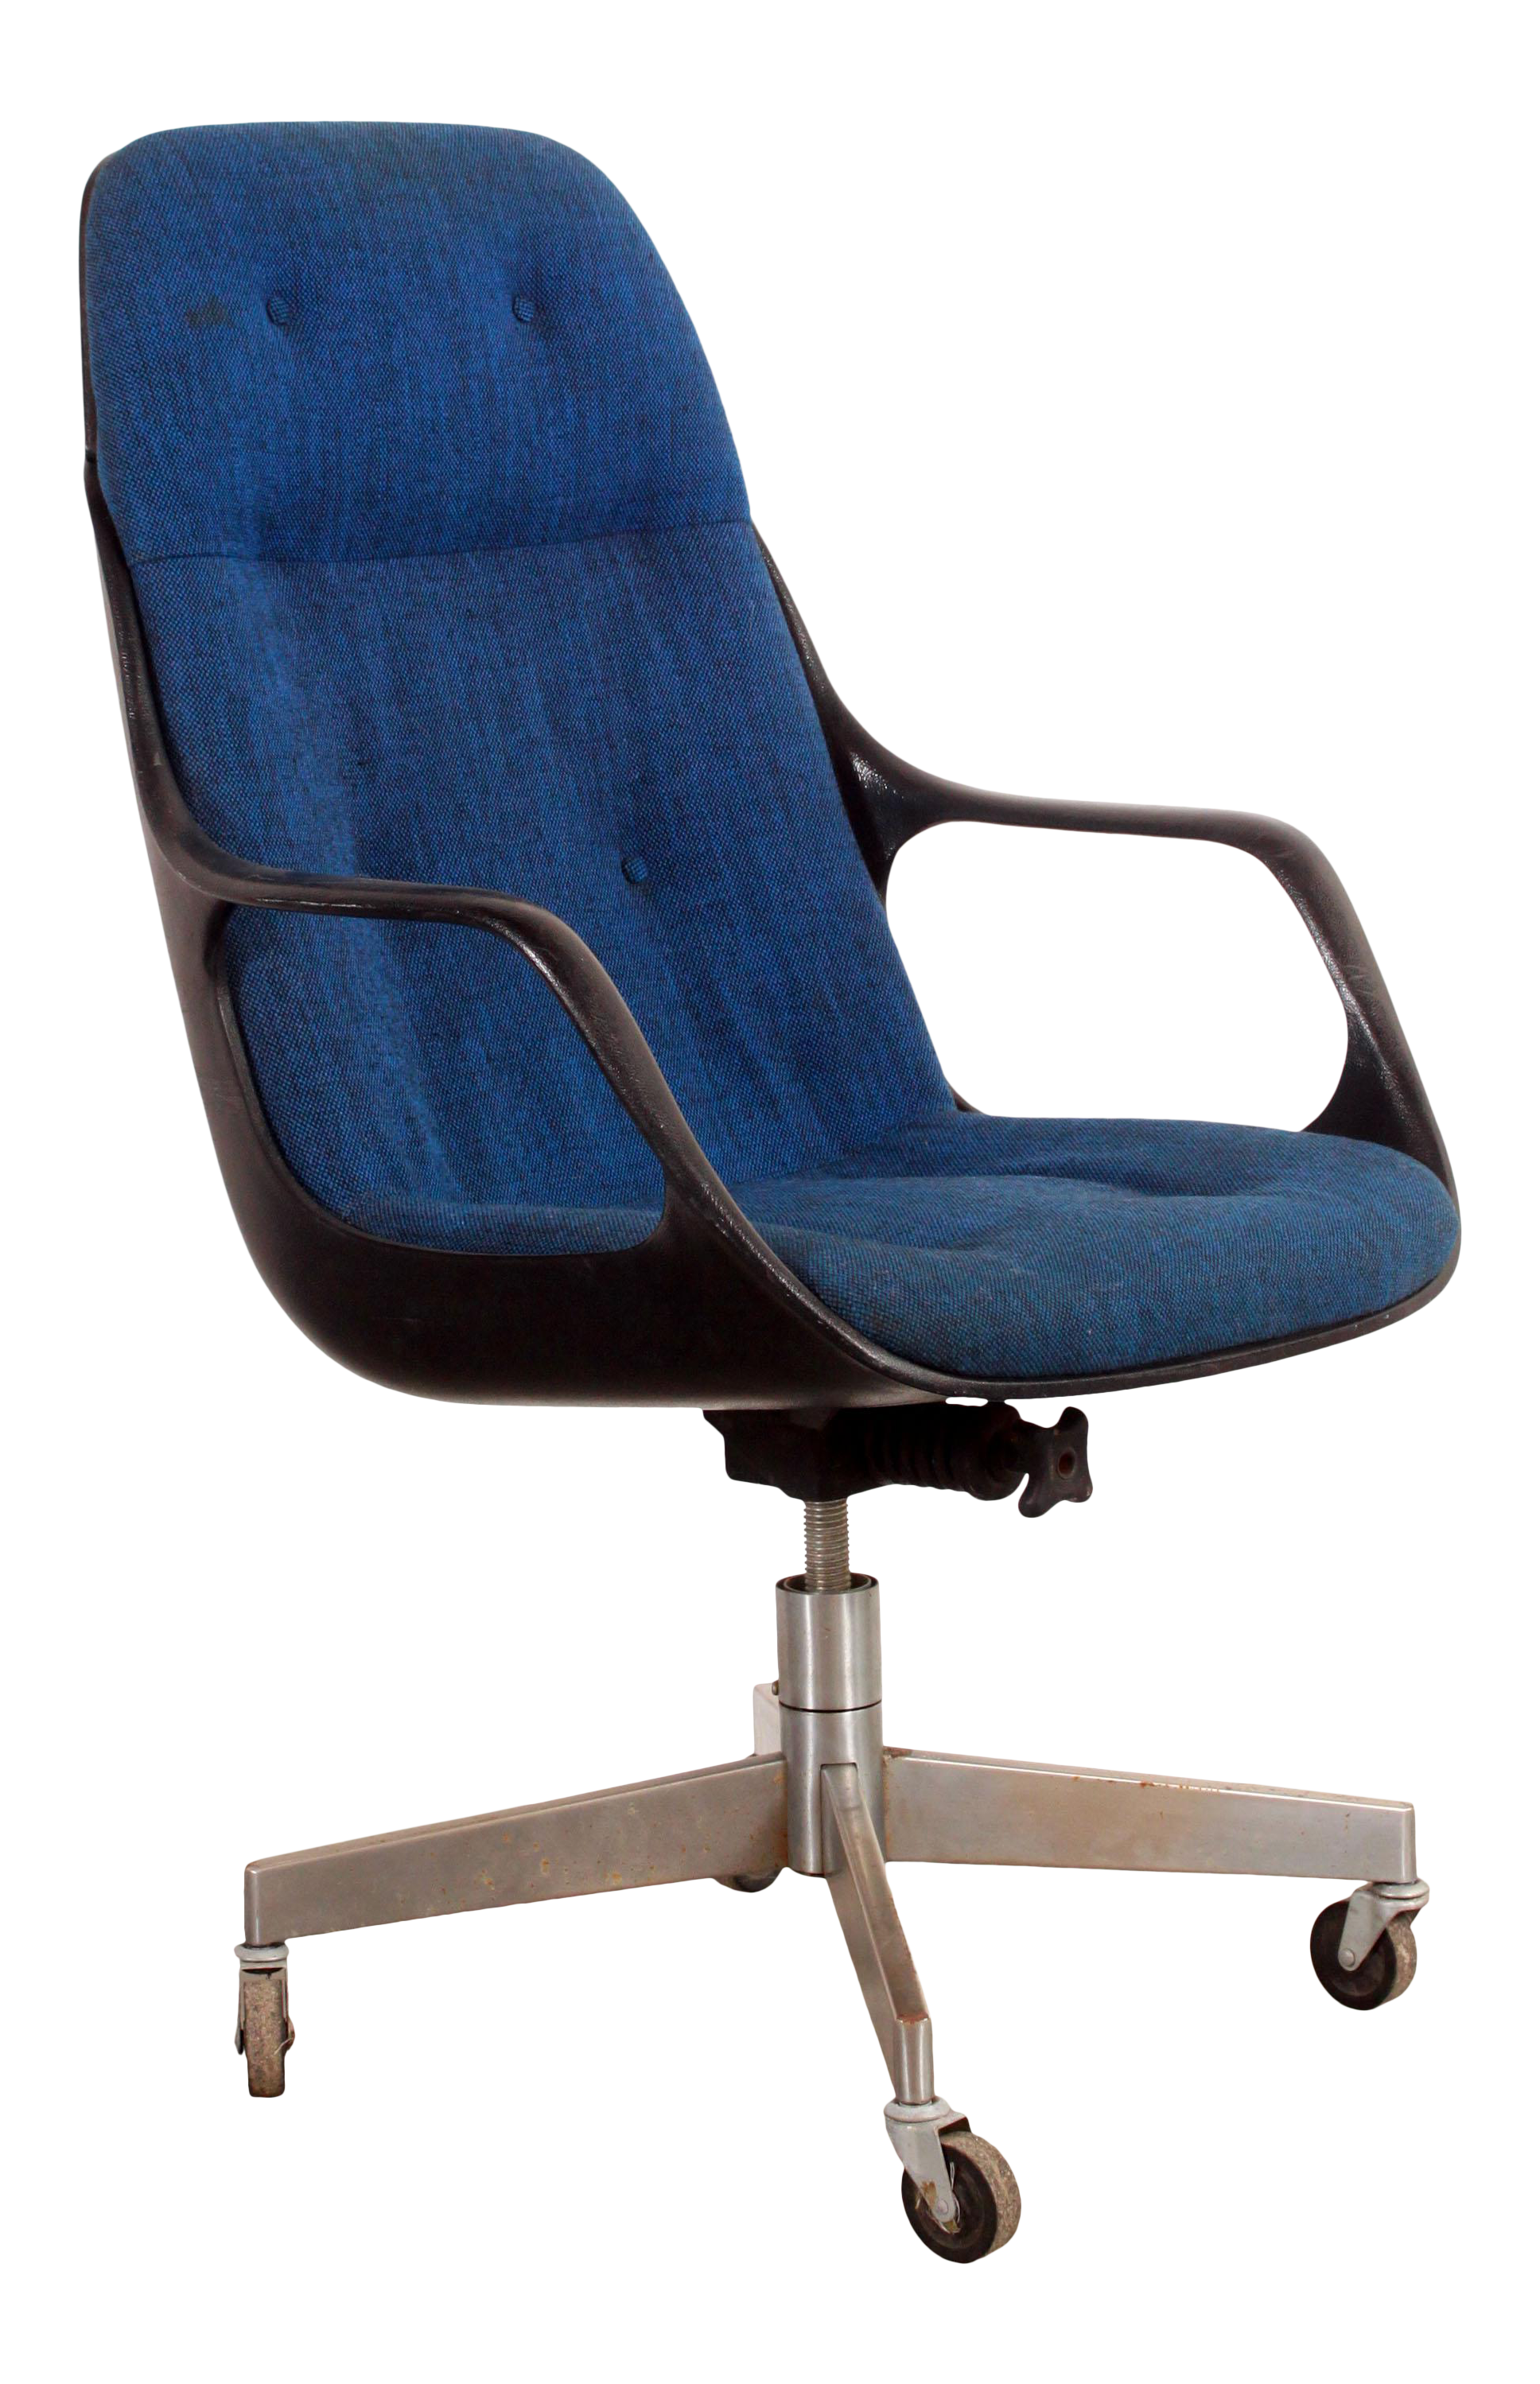 Vintage Mid Century Modern Blue High Back Executive Desk Chair